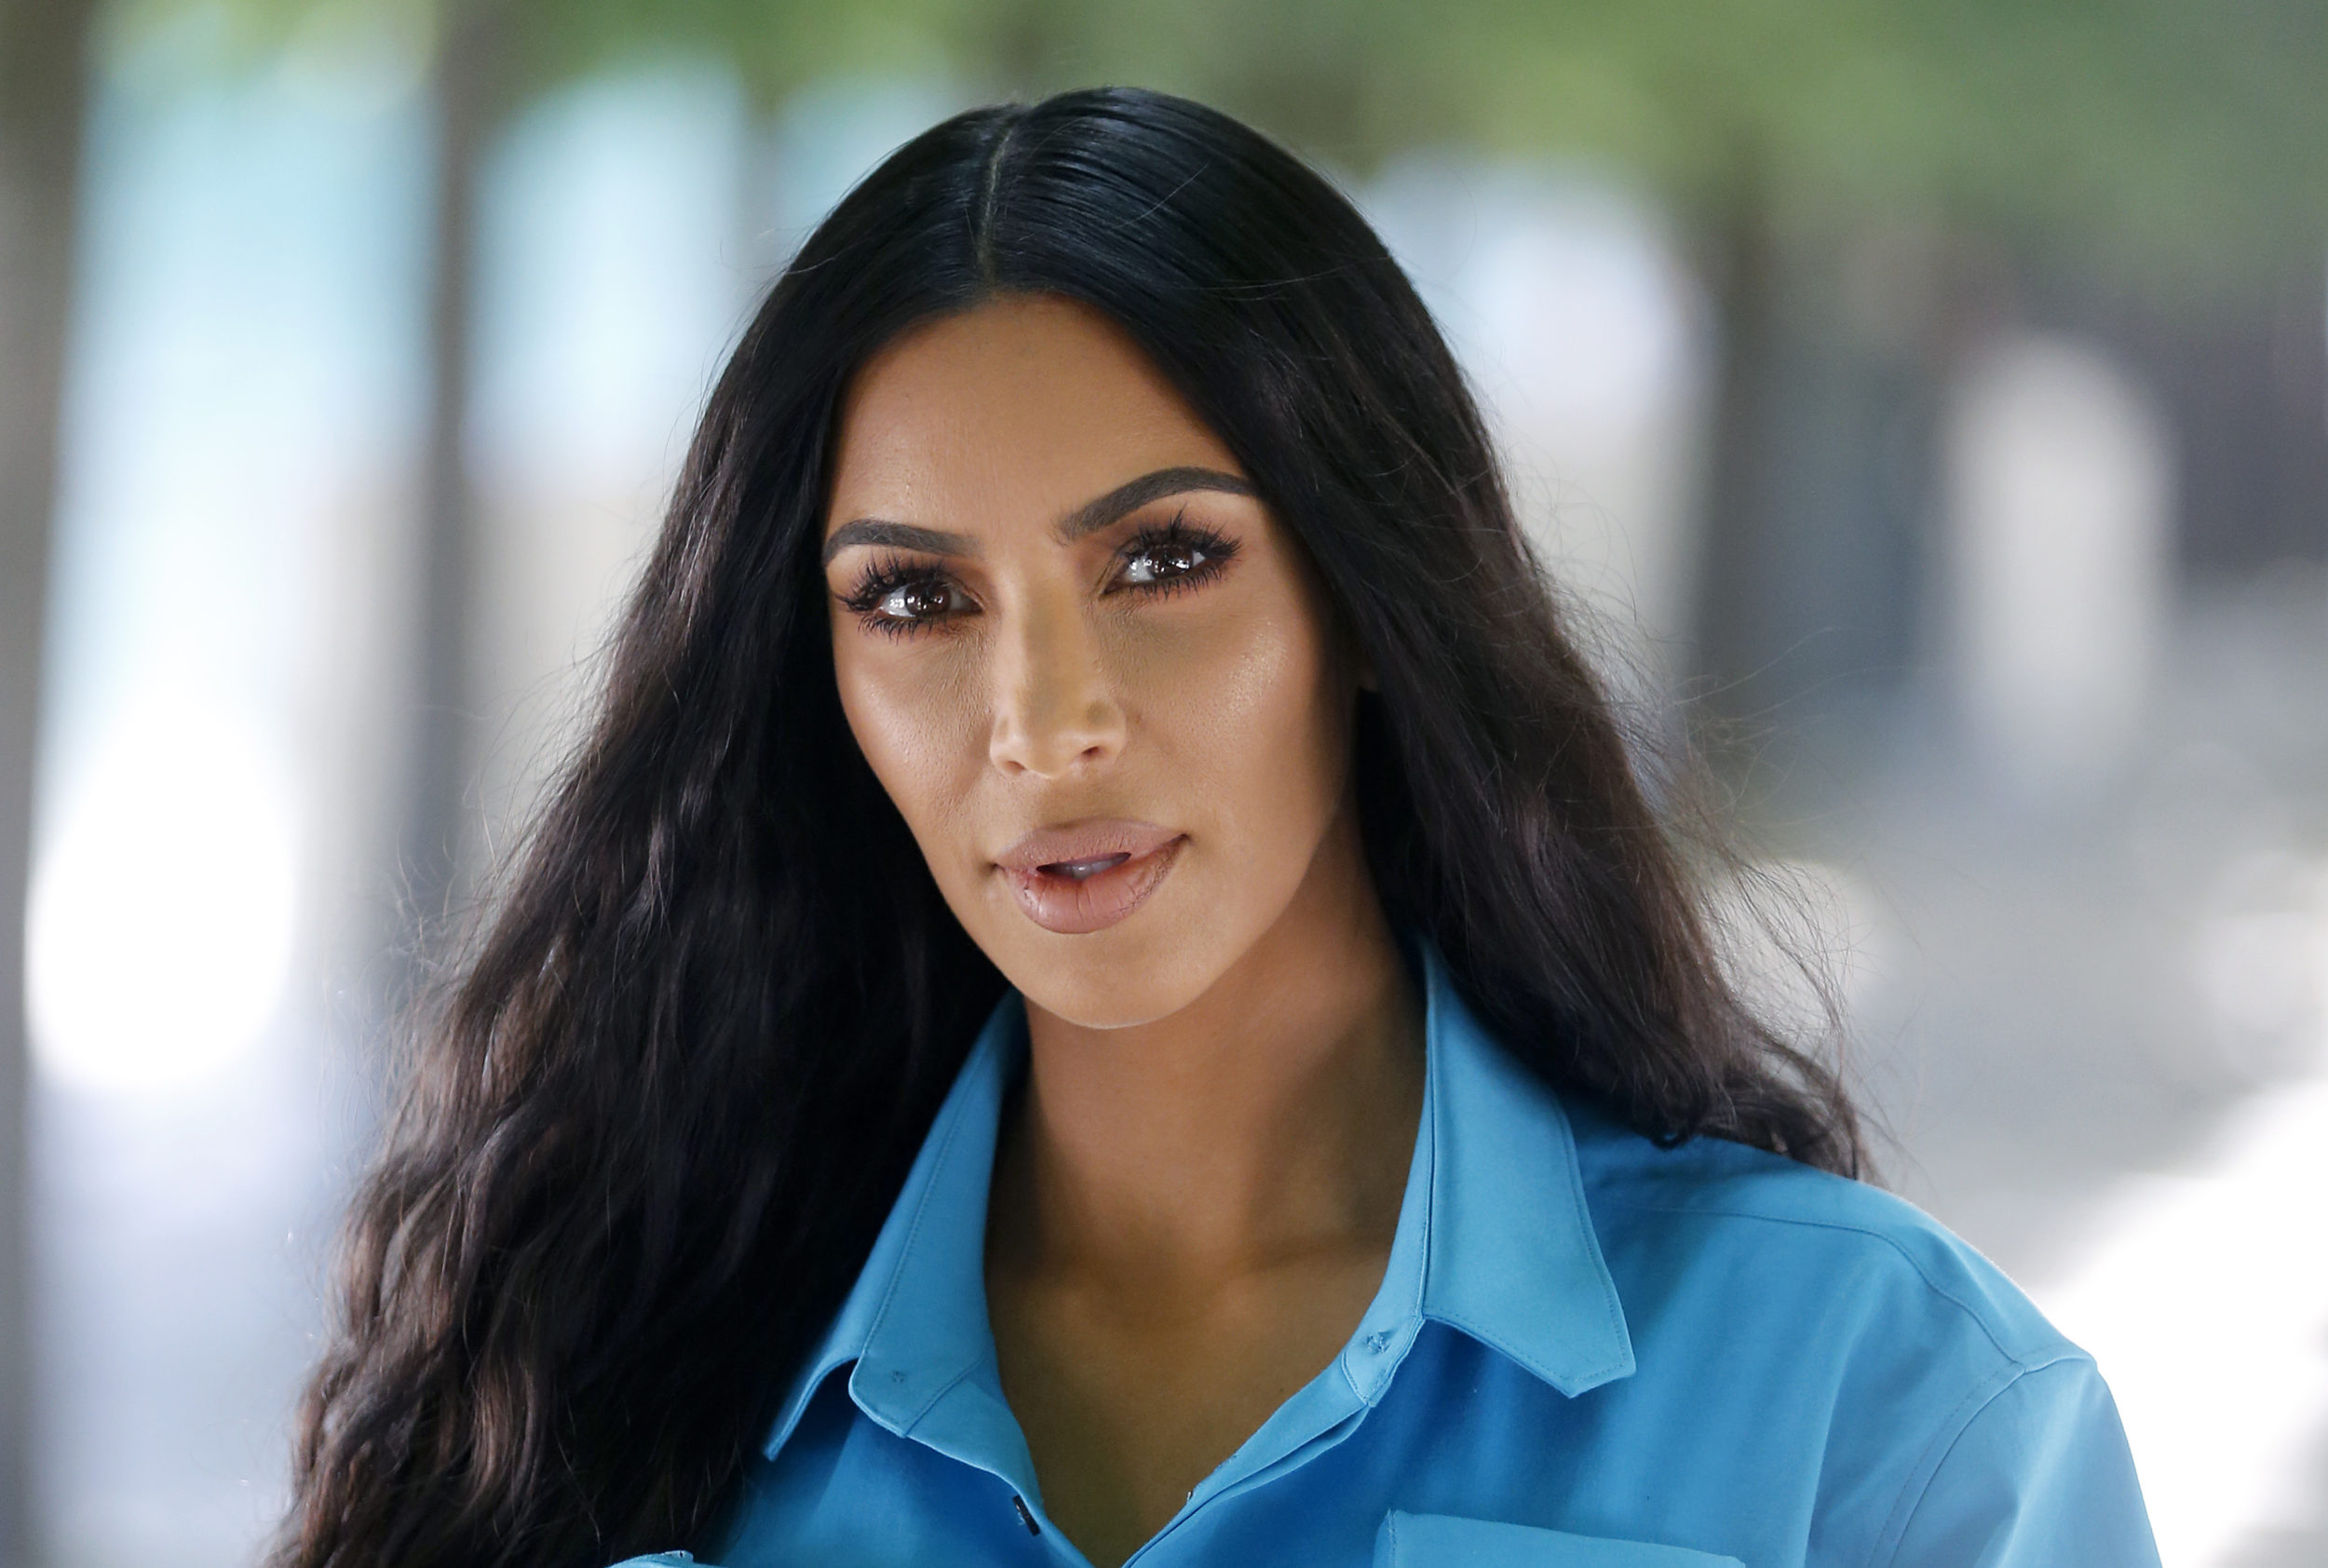 Kim Kardashian copies sister Khloé and chops her own hair into a sleek bob